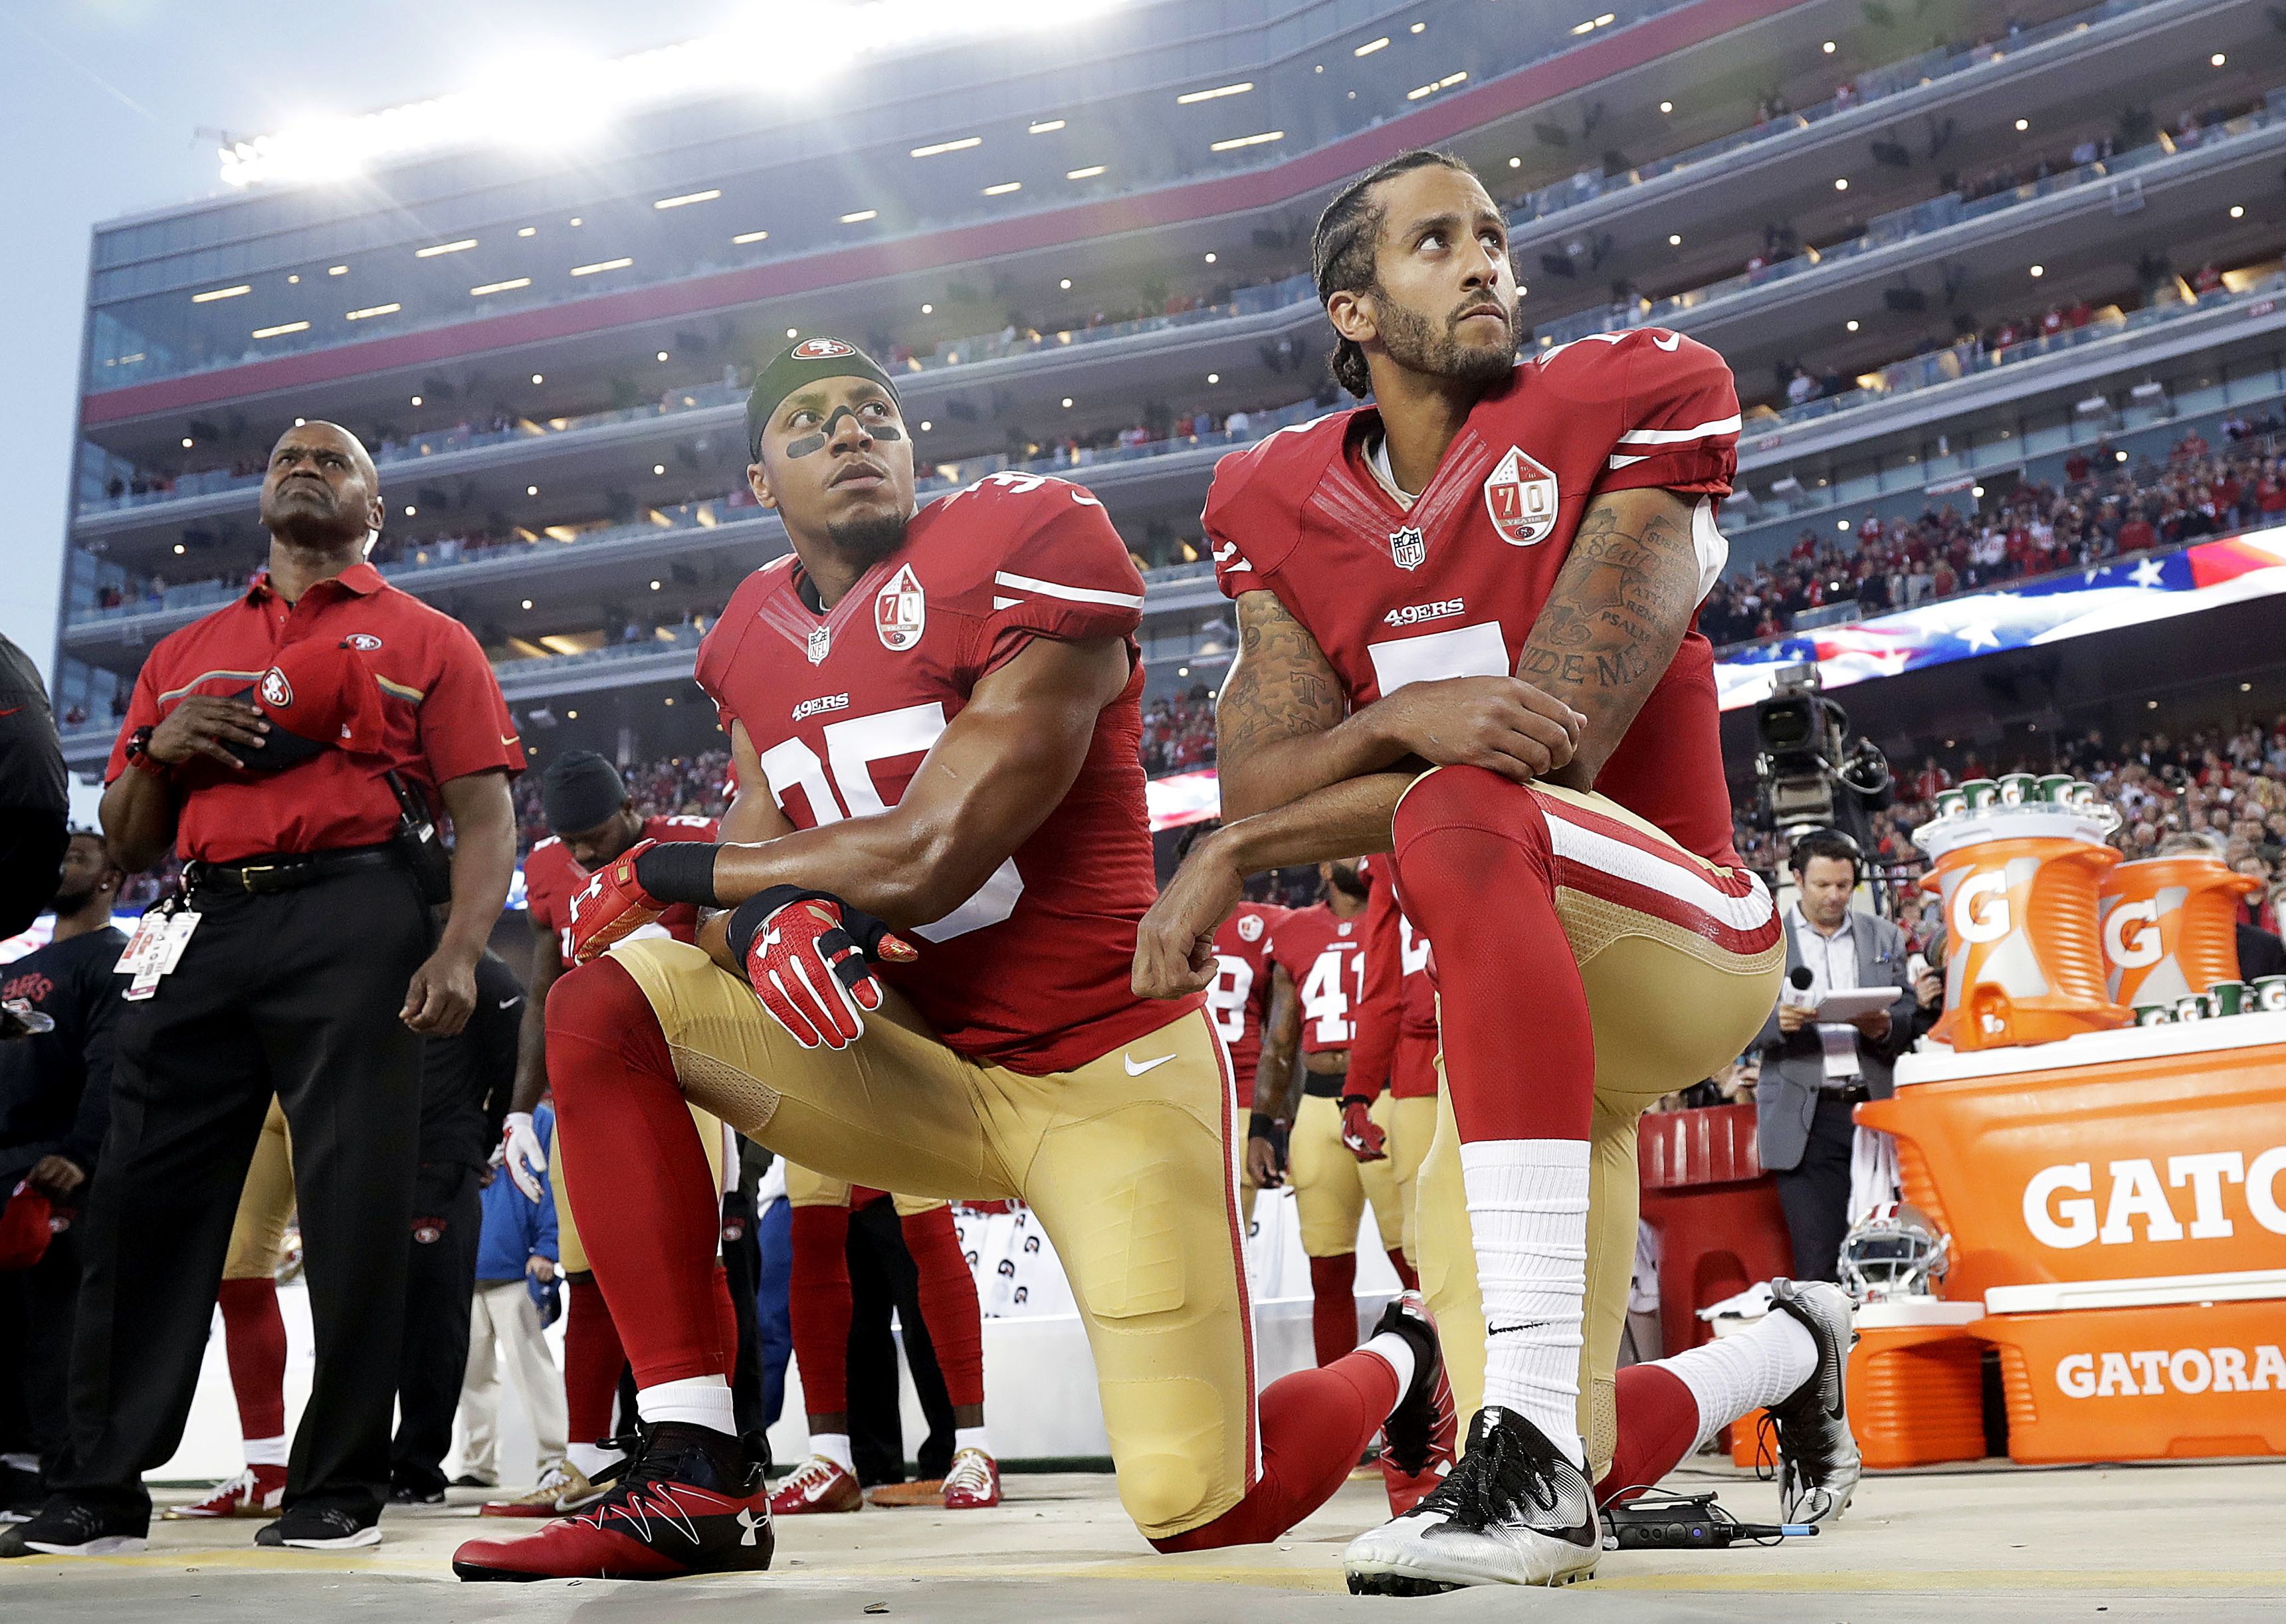 Can Colin Kaepernick (or you) get fired for a political